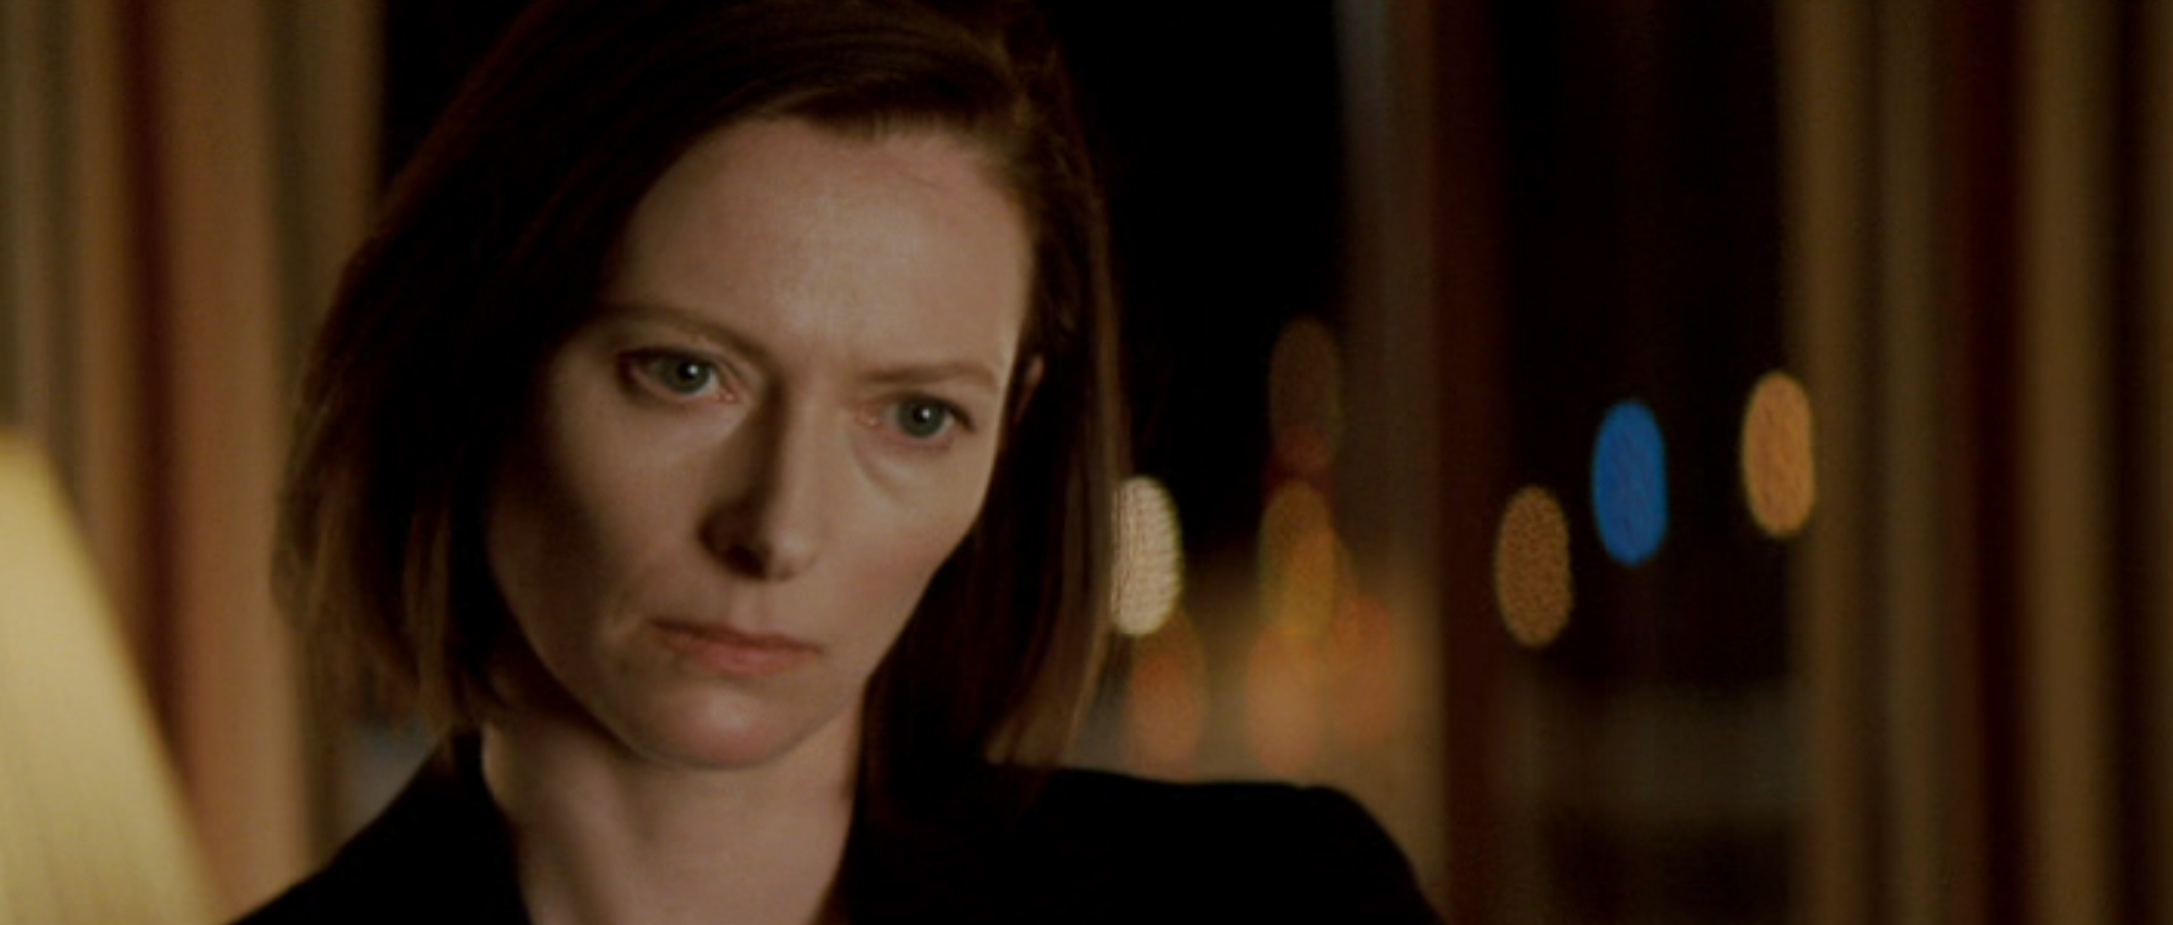 Karen (Swinton) decides how far she'll go to protect her company